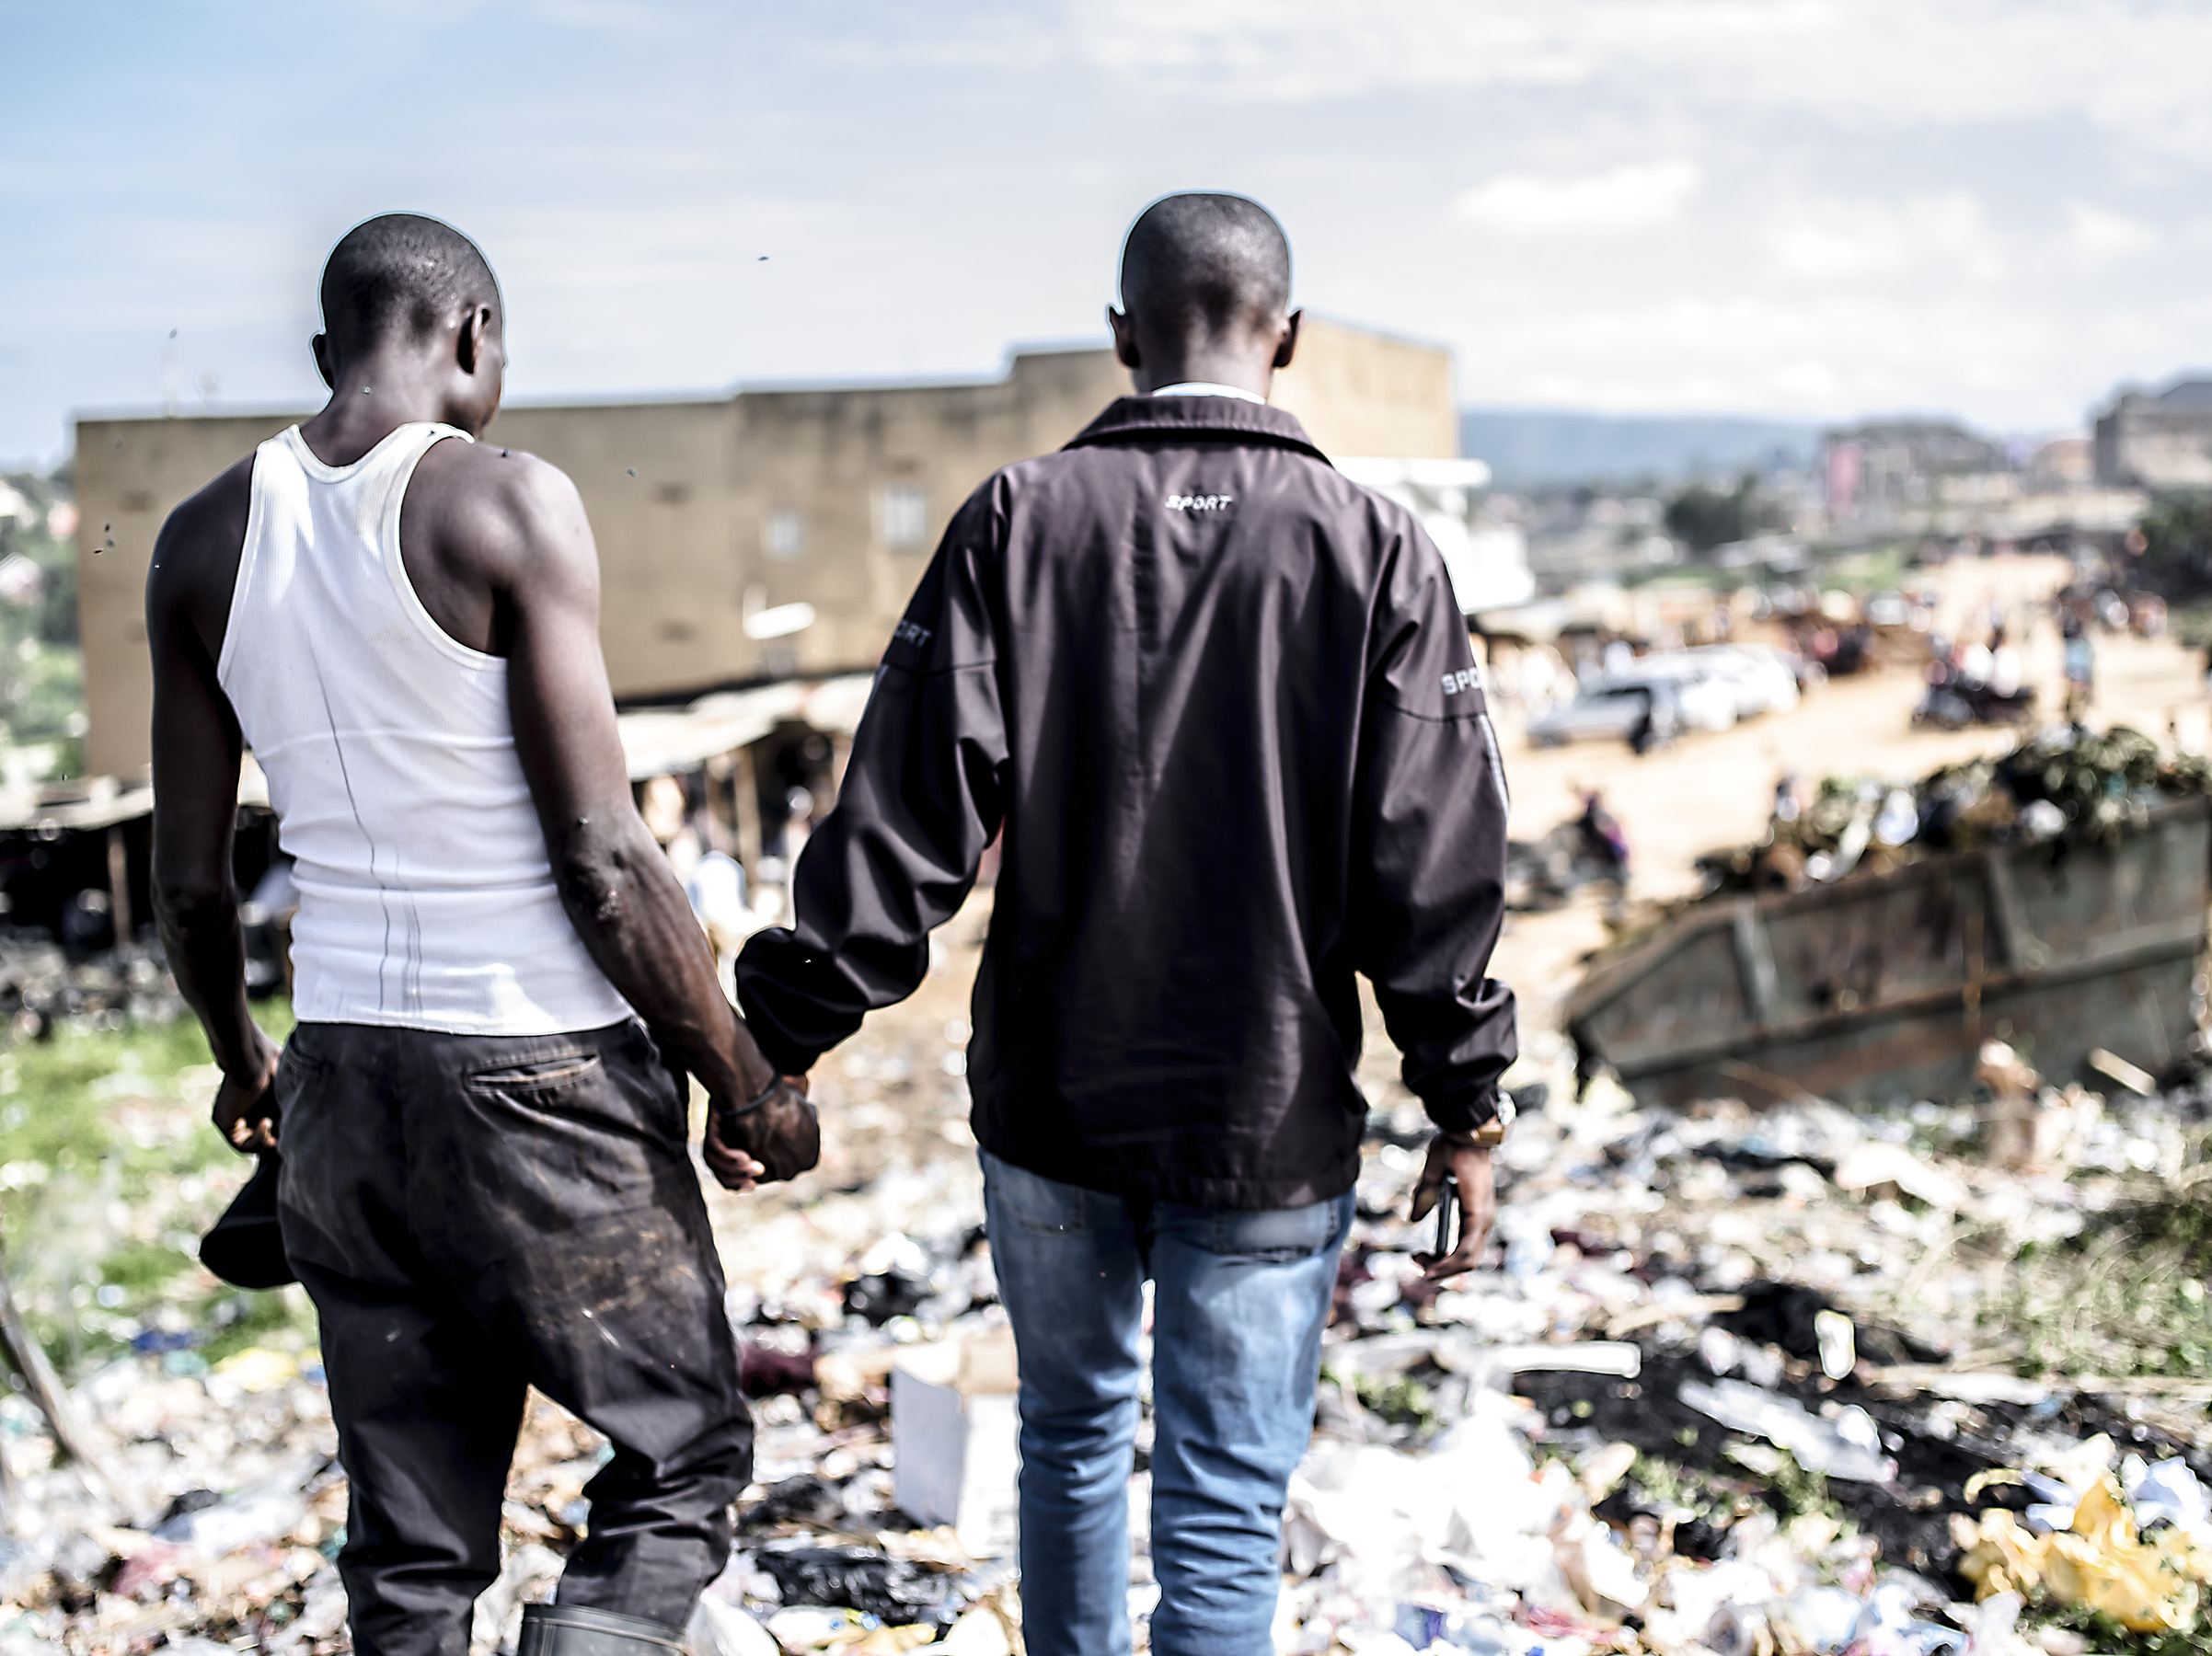 Taremwa Sam Rwabwehare holds hands with an informal recycler as they lead one another through the trash to talk about the worker's life, his work and the area. Mbarara.